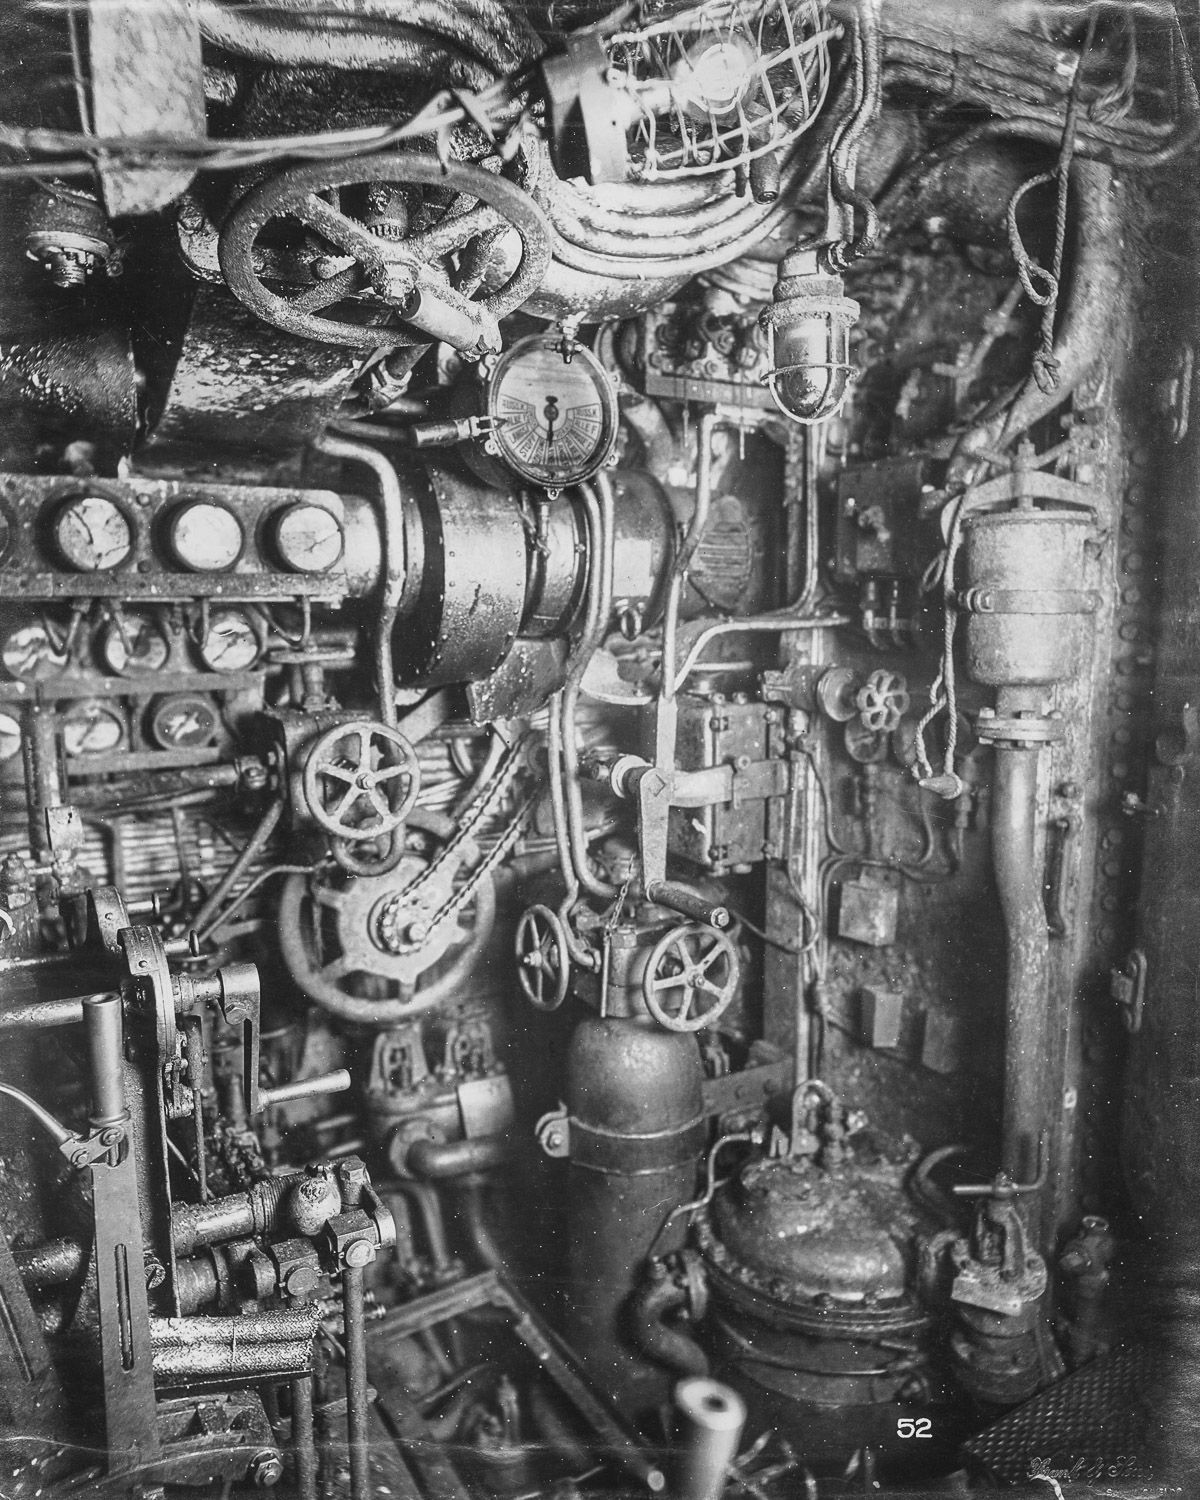 Bb 57 Engine Room: The Inside Of A WWI Submarine Was Creepy And